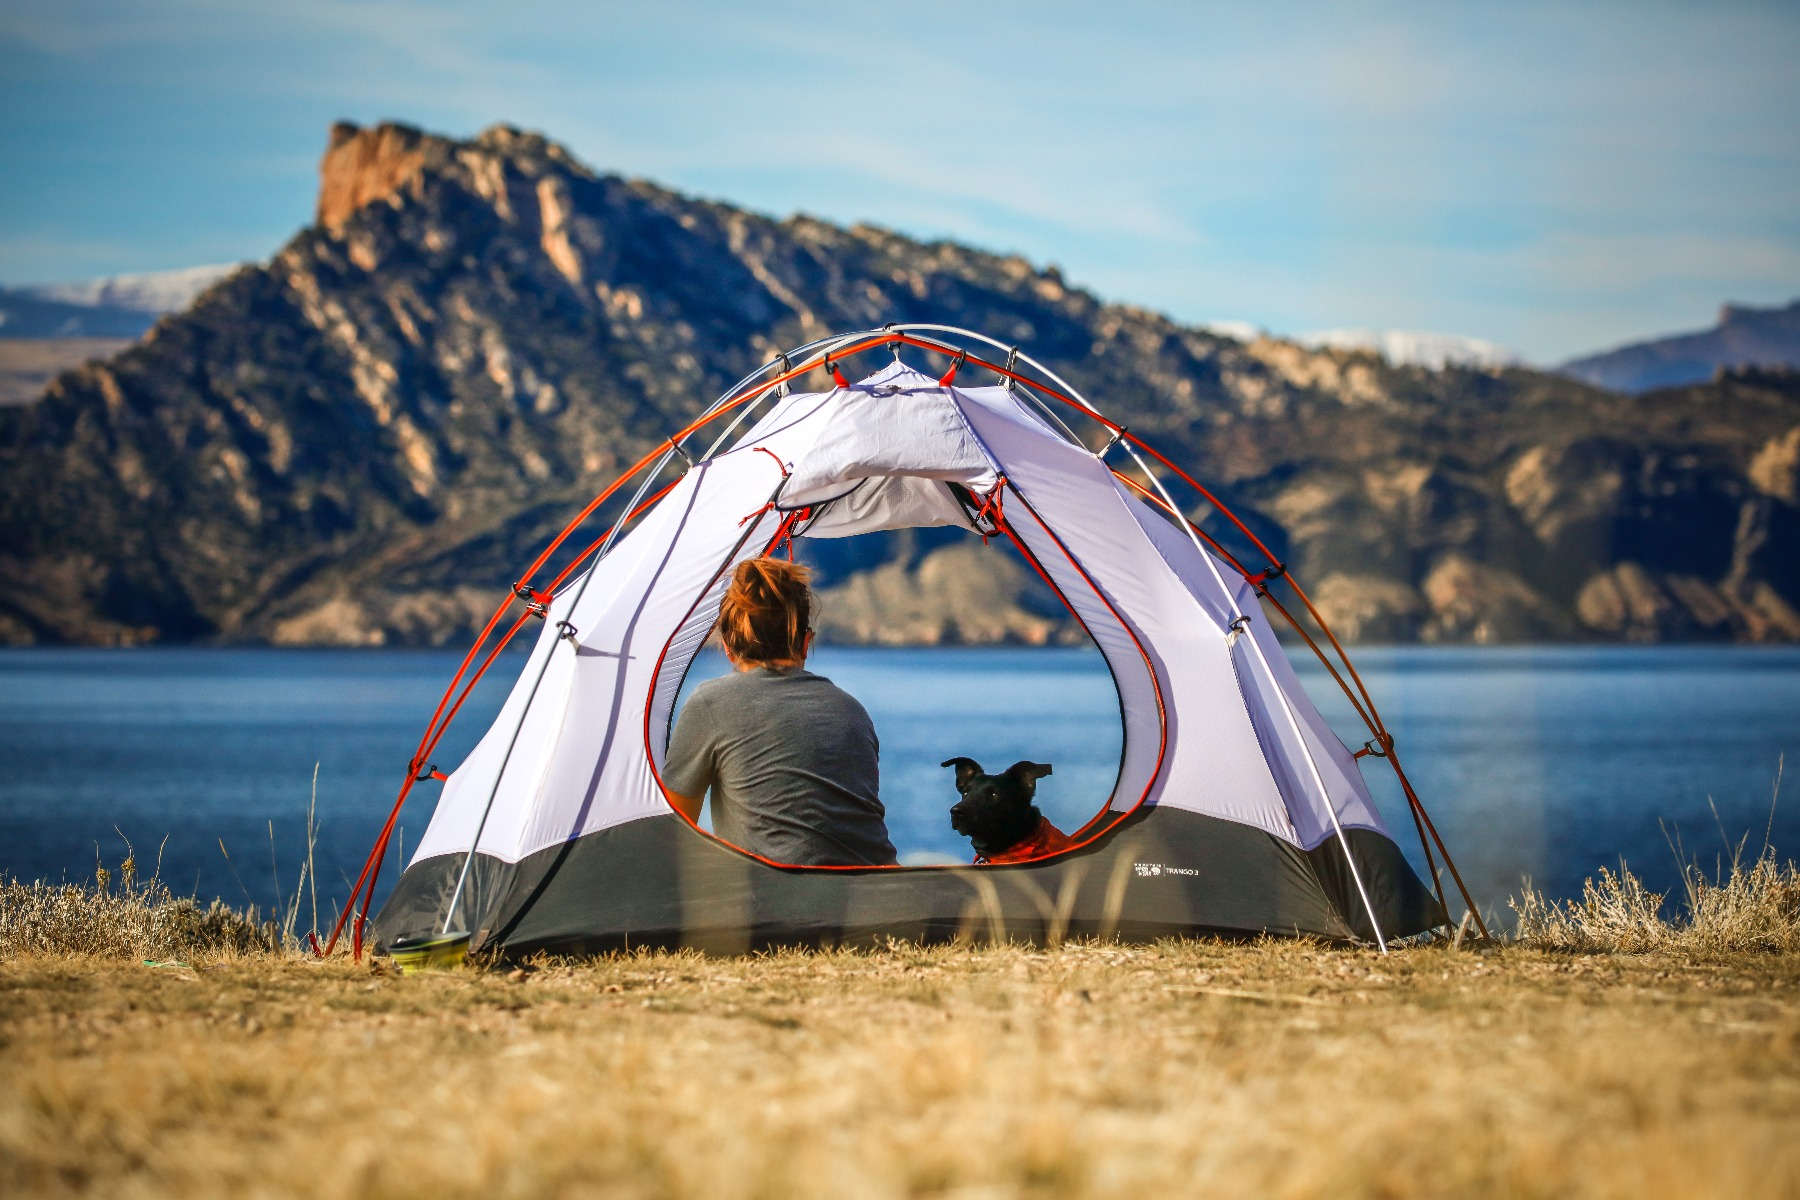 Dog and dog owner camping near a lake